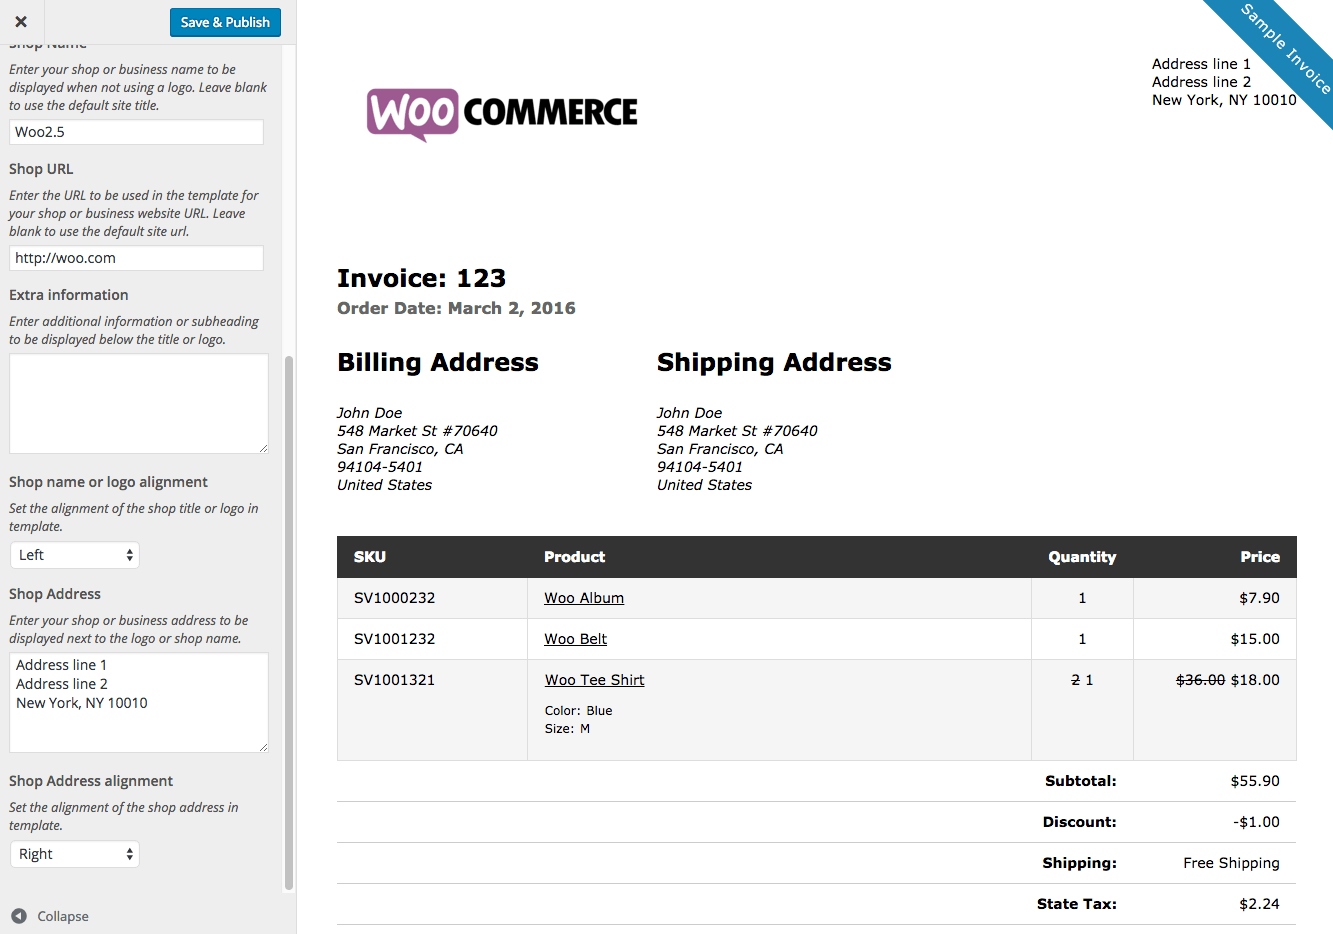 Aaaaeroincus  Marvellous Woocommerce Print Invoices Amp Packing Lists  Woocommerce Docs With Glamorous Woocommerce Print Invoices  Packing Lists Customizer With Archaic I  Receipt Notice Also How To Fill Out A Receipt In Addition Kohls Return Policy Without Receipt And Bill Of Sale Receipt As Well As Hertz Toll Receipts Additionally Receipt Booklet From Docswoocommercecom With Aaaaeroincus  Glamorous Woocommerce Print Invoices Amp Packing Lists  Woocommerce Docs With Archaic Woocommerce Print Invoices  Packing Lists Customizer And Marvellous I  Receipt Notice Also How To Fill Out A Receipt In Addition Kohls Return Policy Without Receipt From Docswoocommercecom